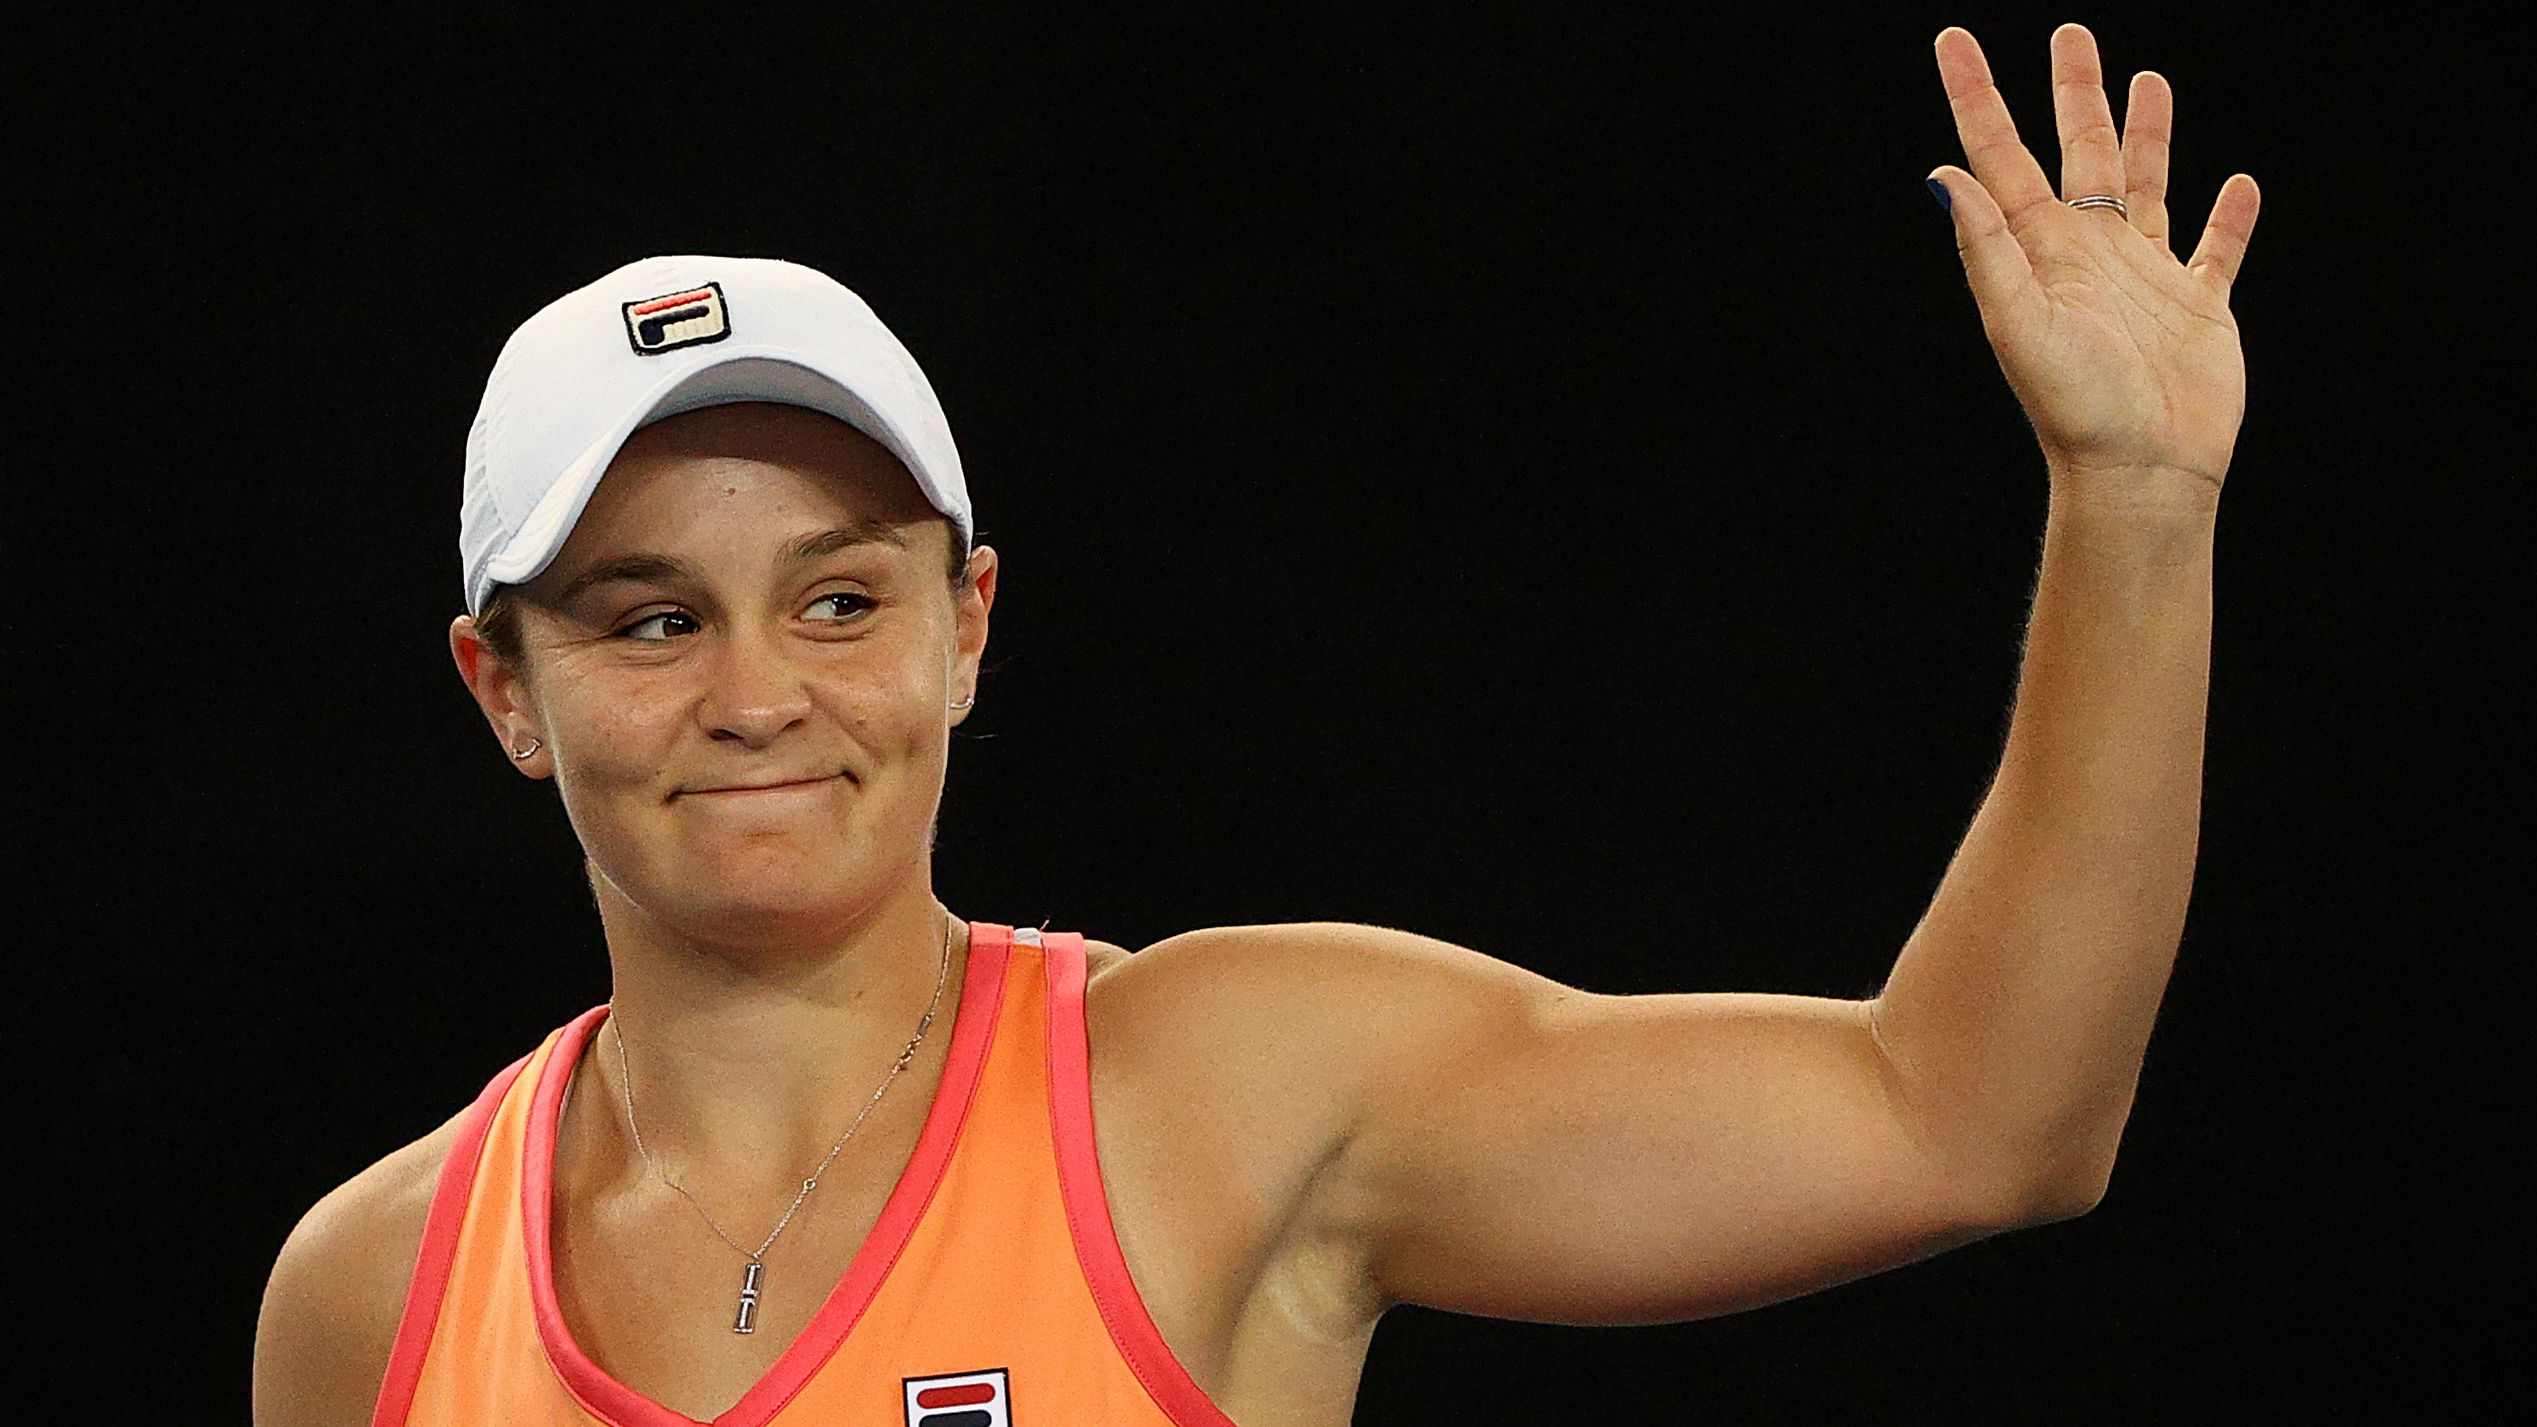 Aussie ace Ash Barty still shaking off the rust as she beats American Shelby Rogers in tie-break